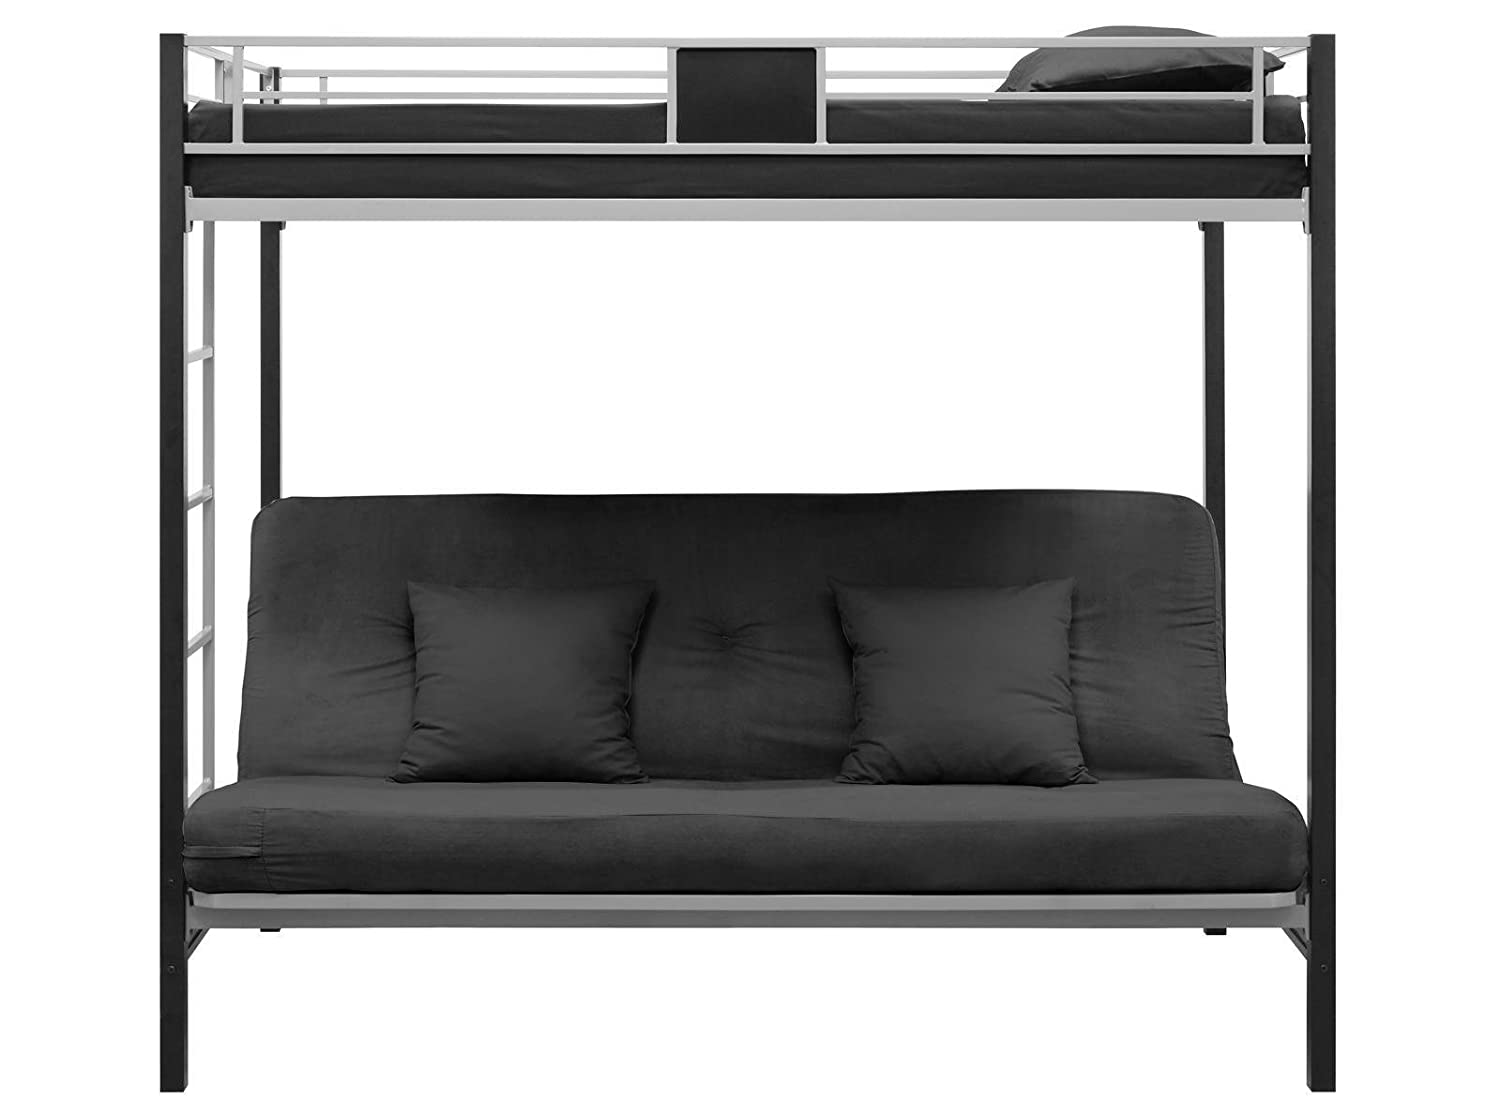 andrea dorel futon fortytwo black raw cor d futons home bed sofa furniture edited